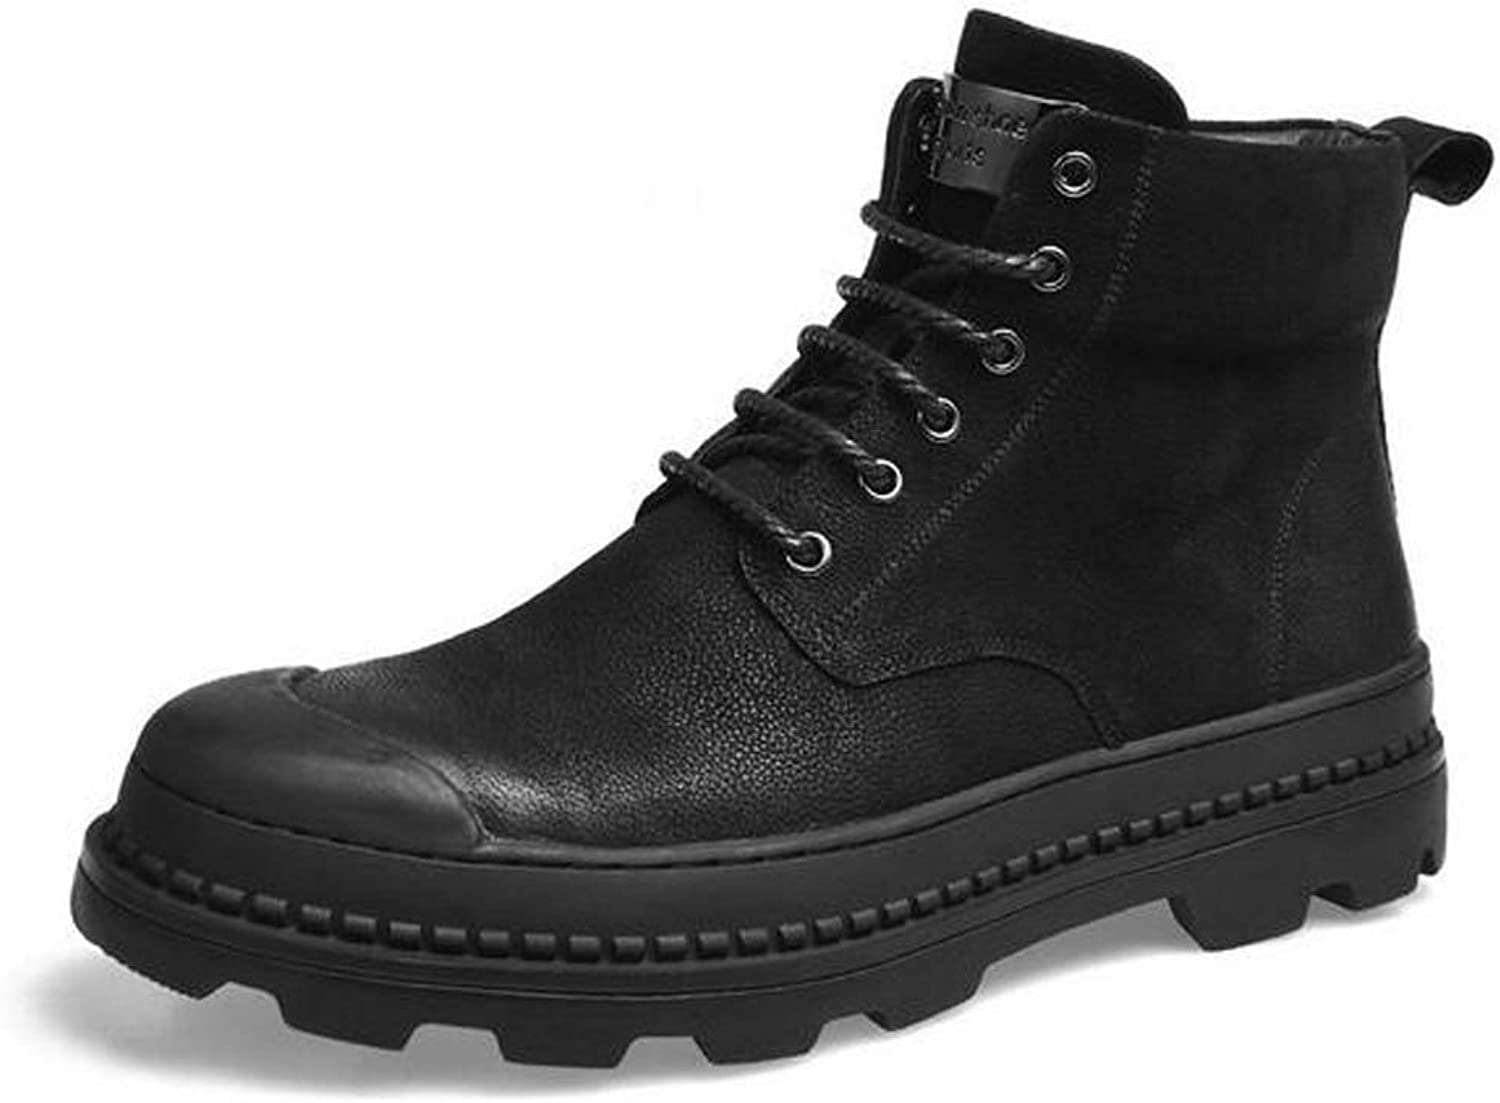 HWG-GAOYZ shoes Men's Martin Ankle Boots Footwear Autumn Winter Retro Outdoor Keep Warm Desert Military Leather Boots Non-slip Breathable,Black-42